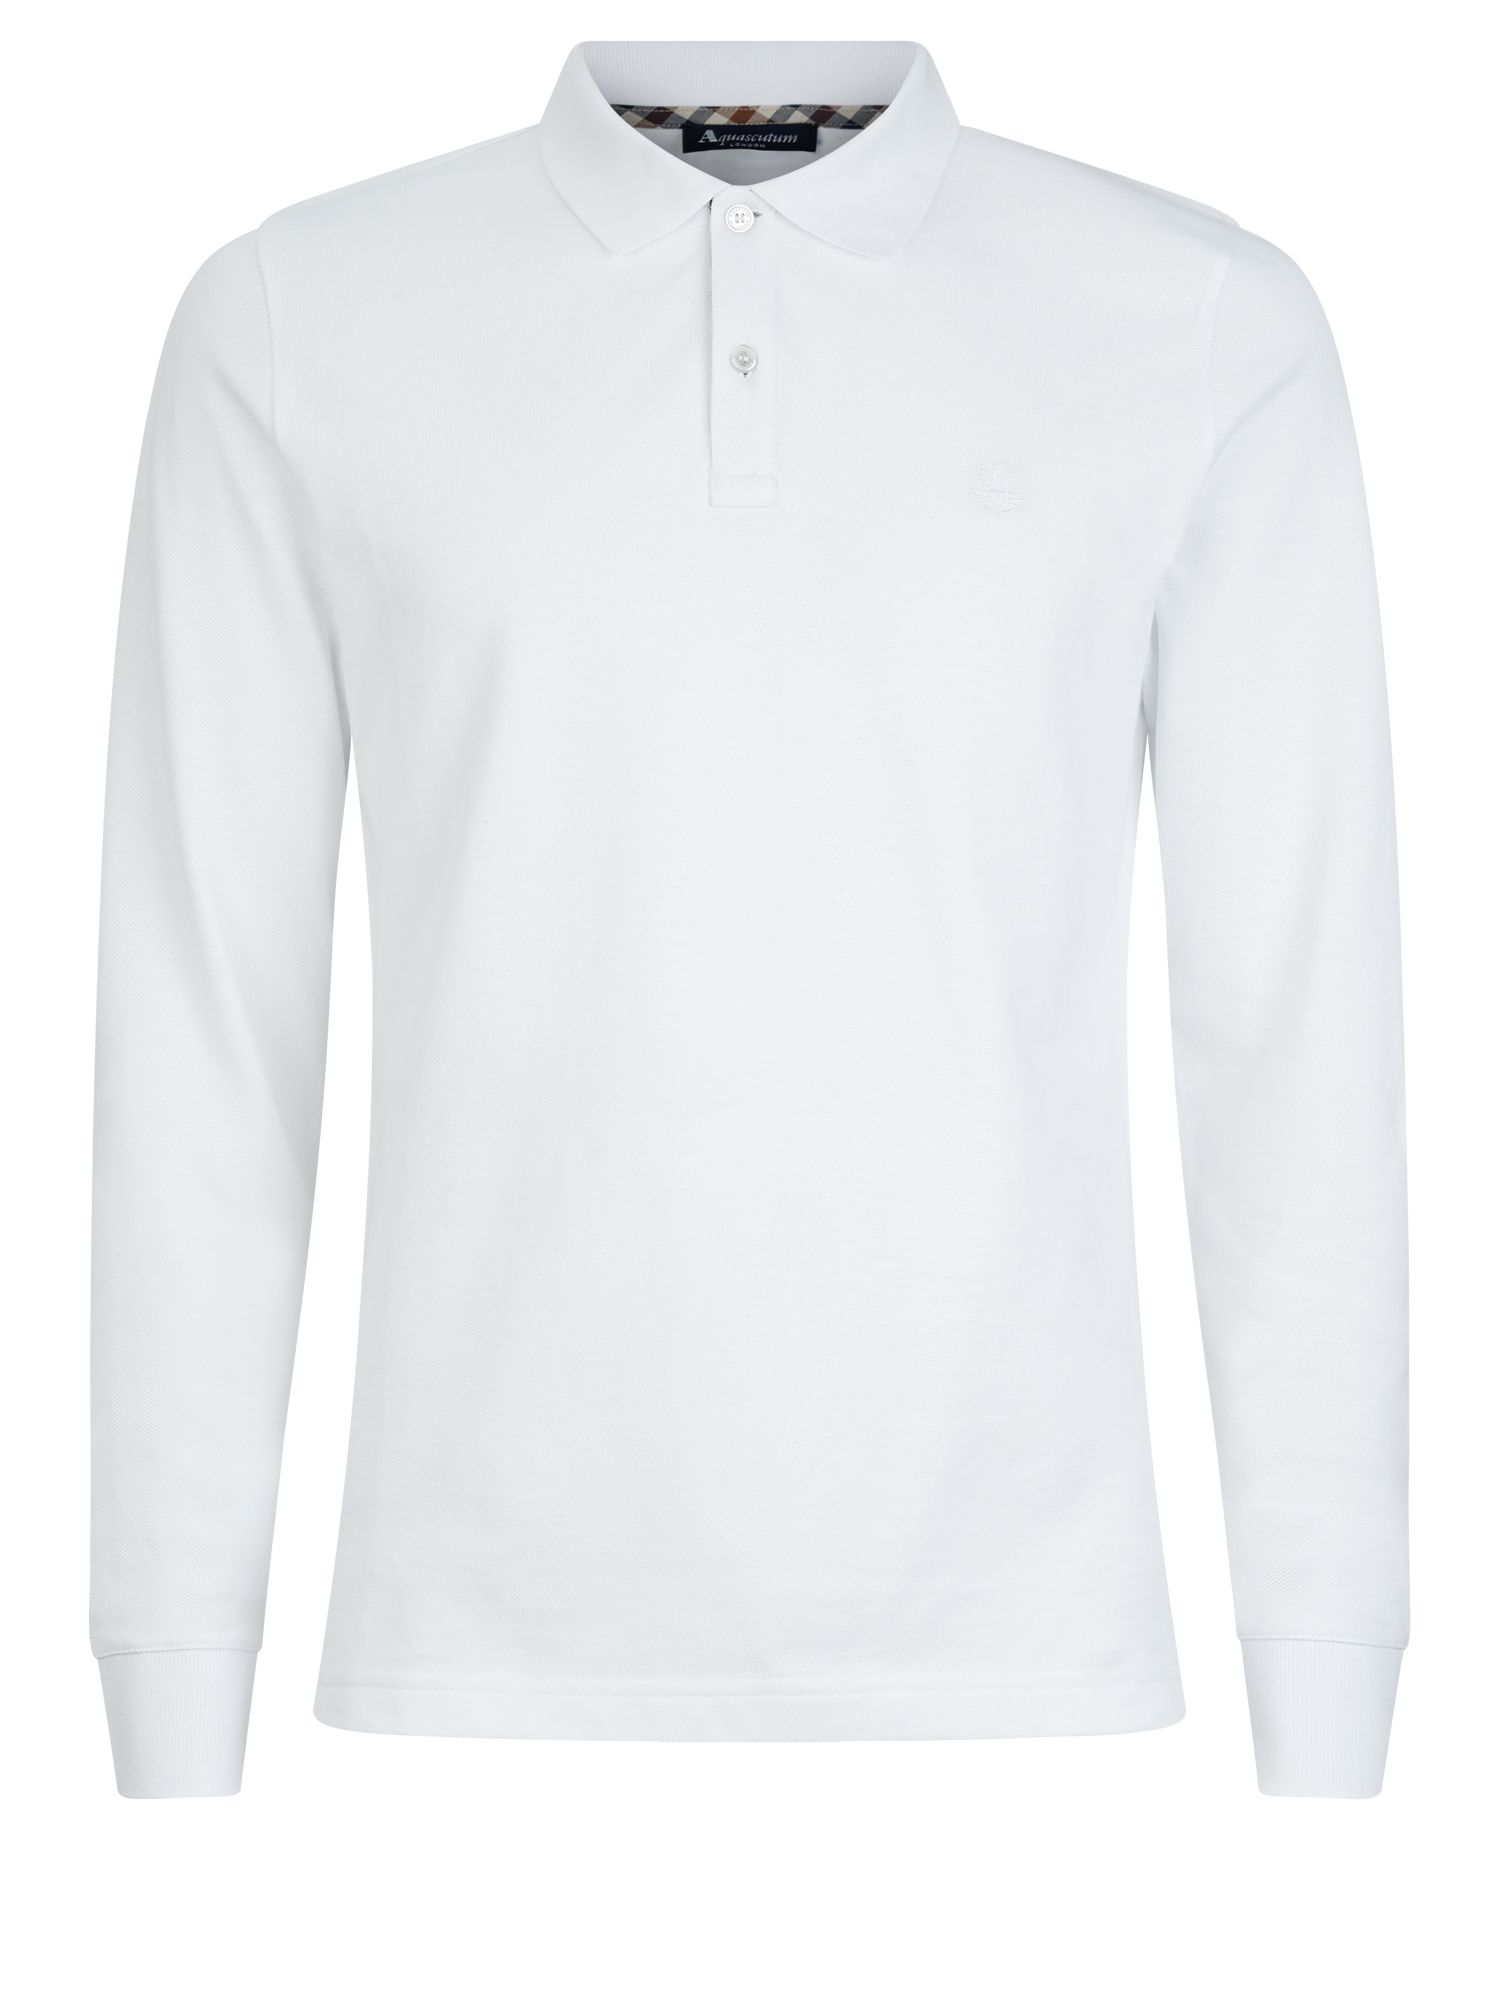 Men's Aquascutum Hilton Long Sleeve Polo, White